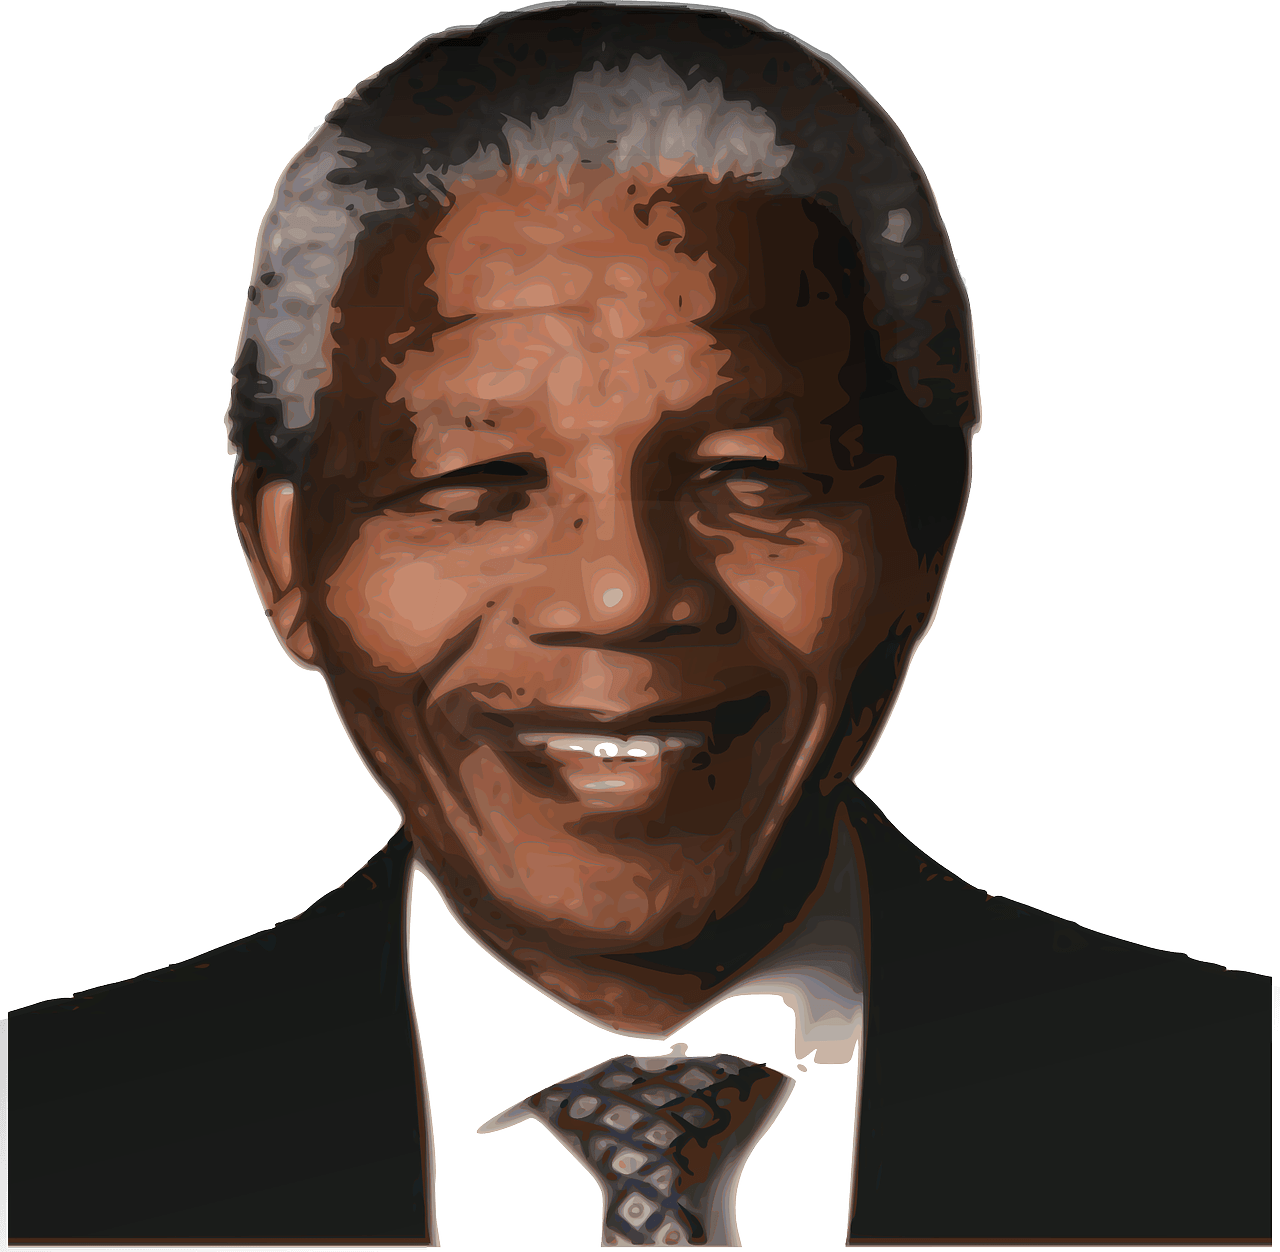 Nelson Mandela Died Five Years Ago Today – Here Are Related Resources